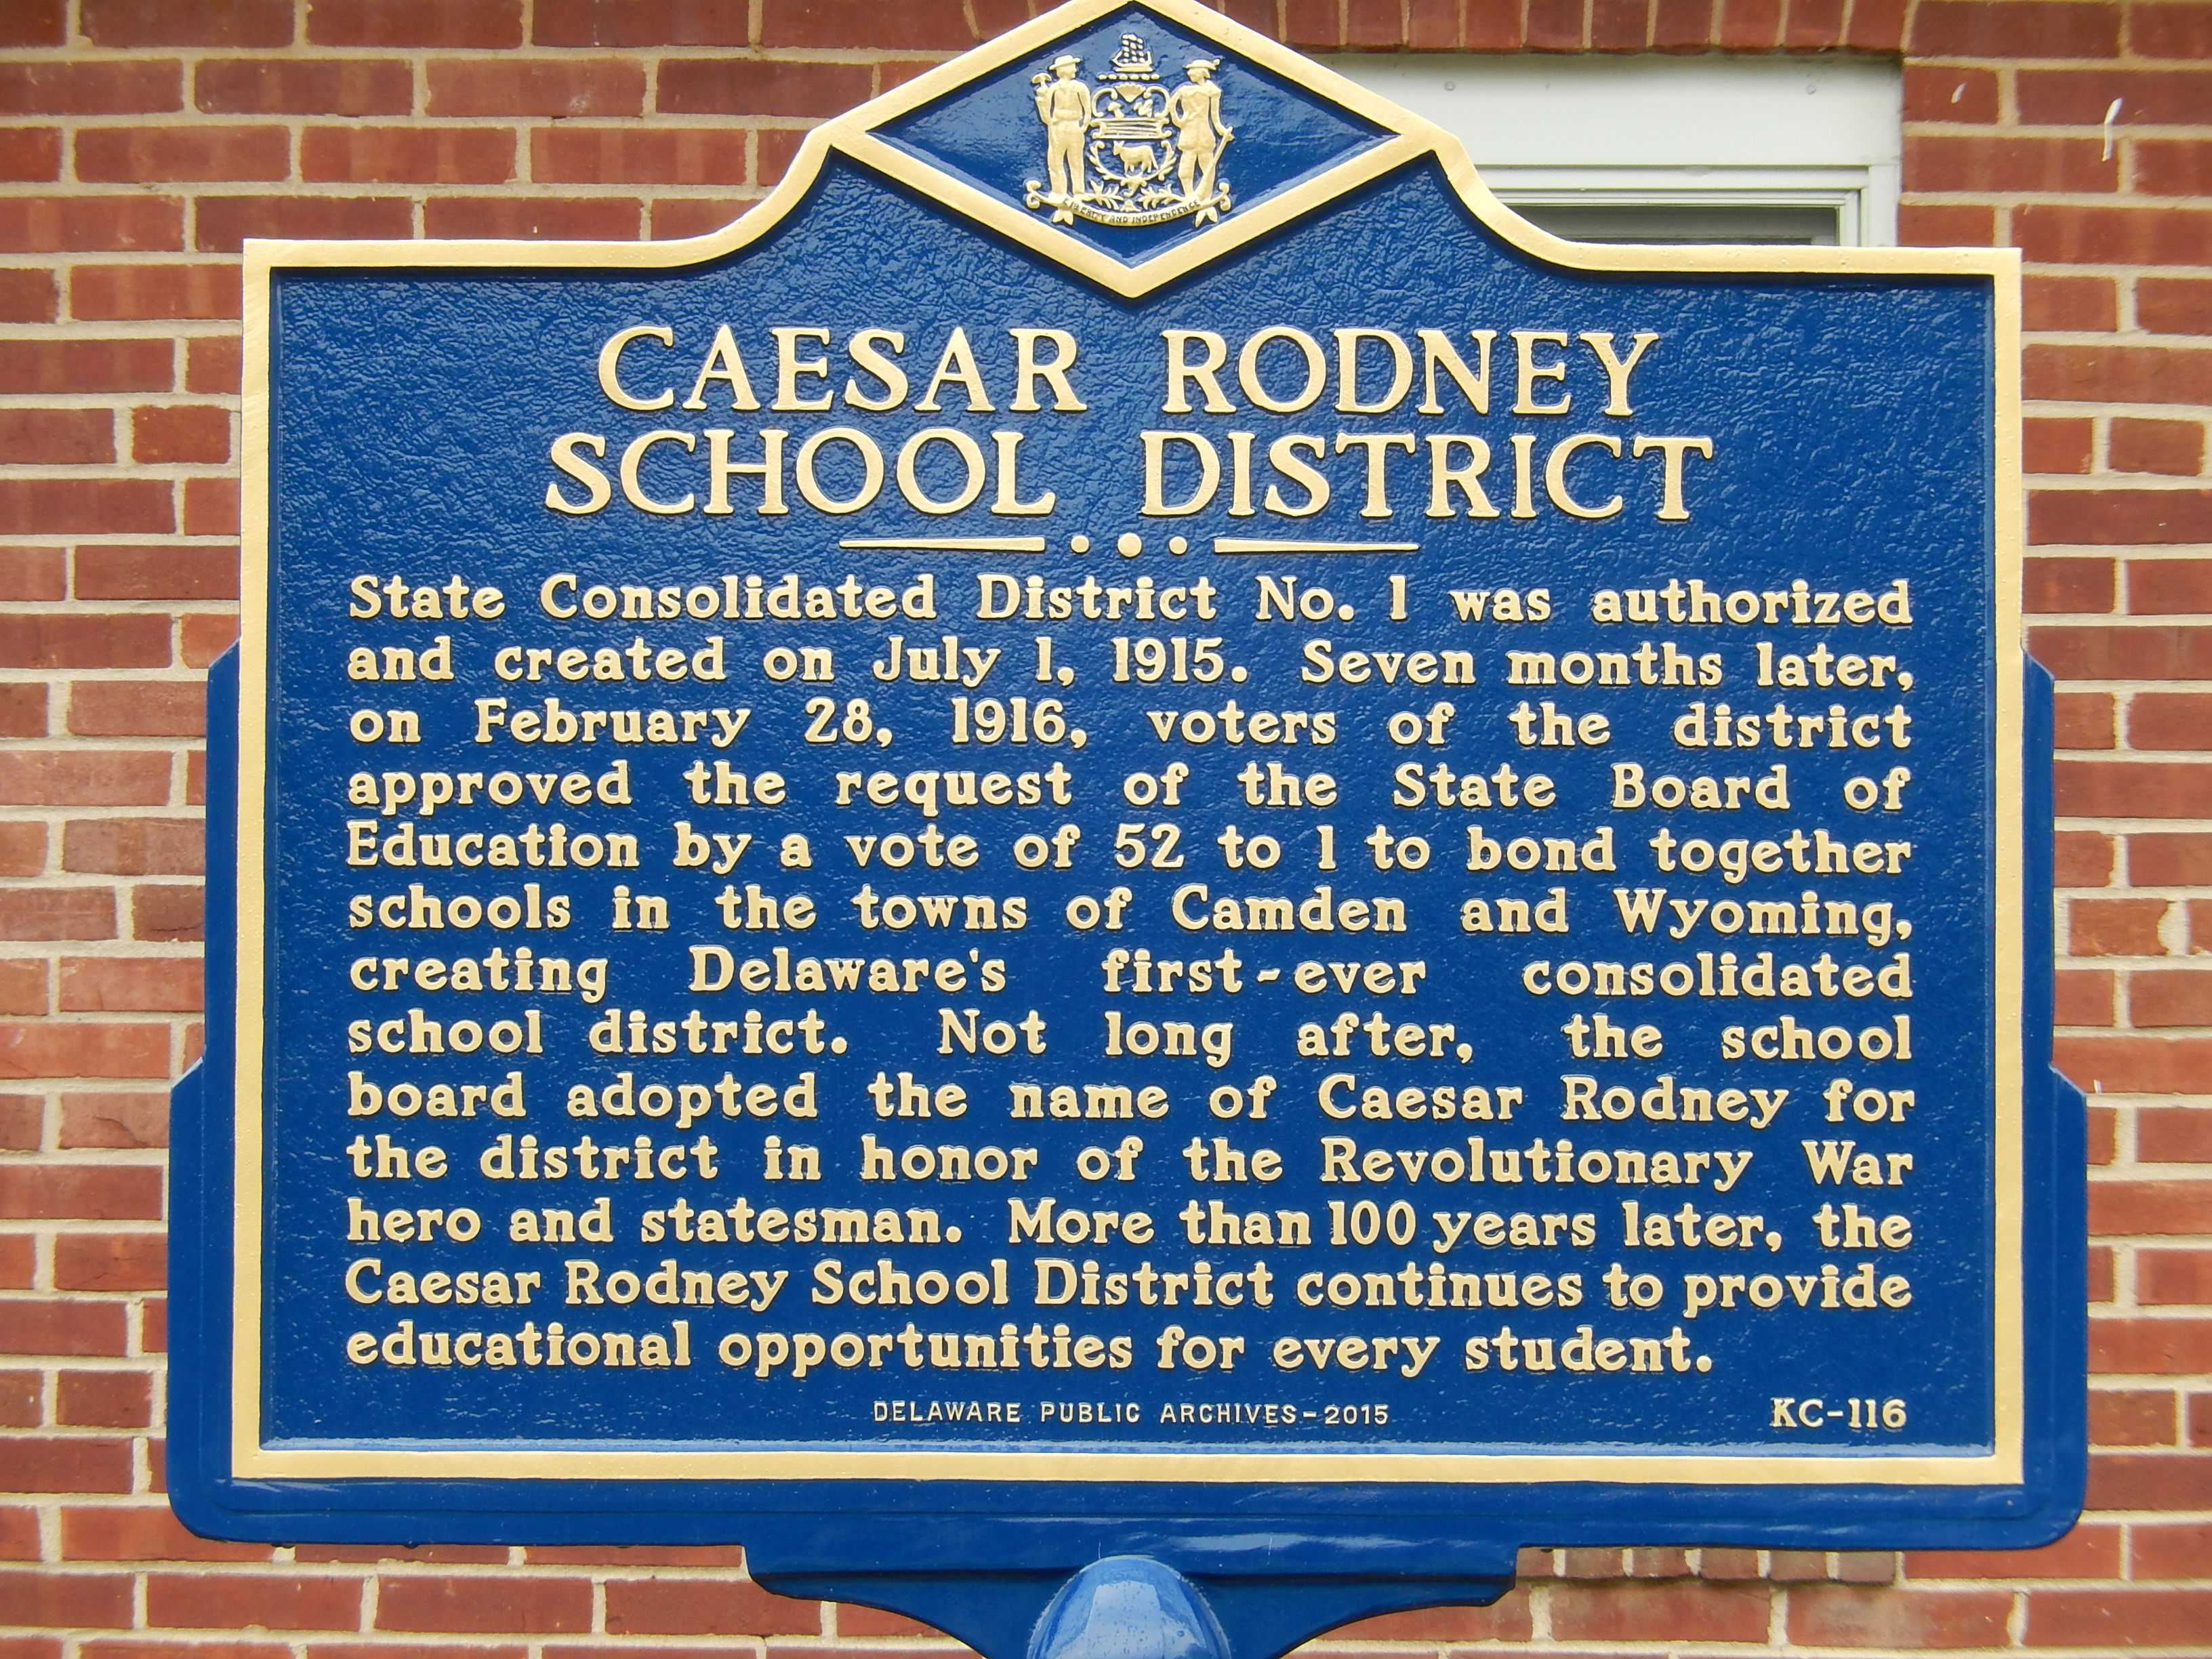 Caesar Rodney School District Marker